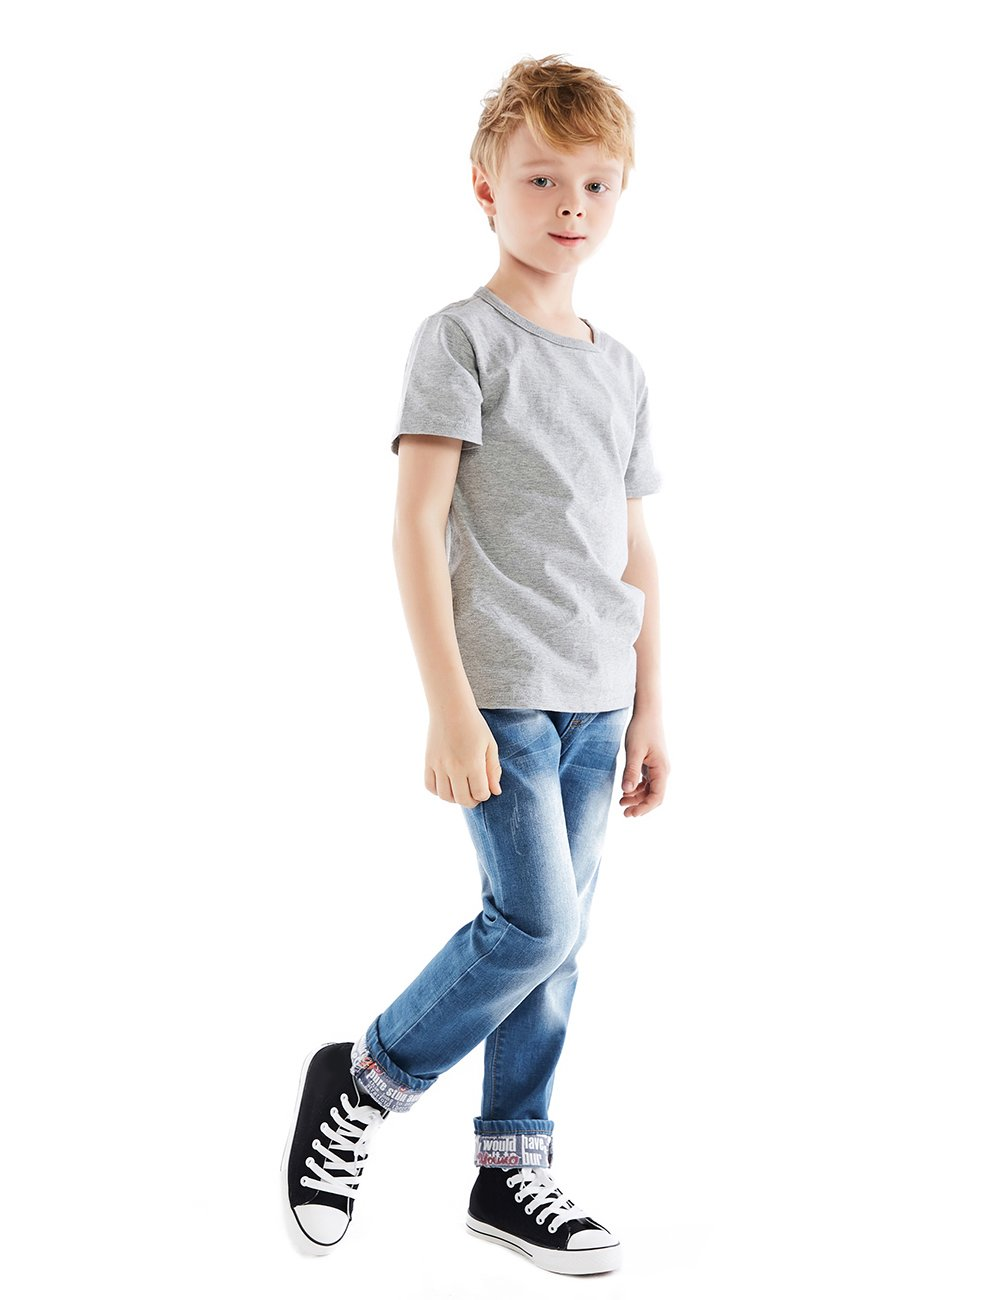 Premium Skinny Boys Jeans Slim Fit Pants for Toddlers Kids and Teens (2T, Nice LT) by HOLLAGLEE (Image #3)